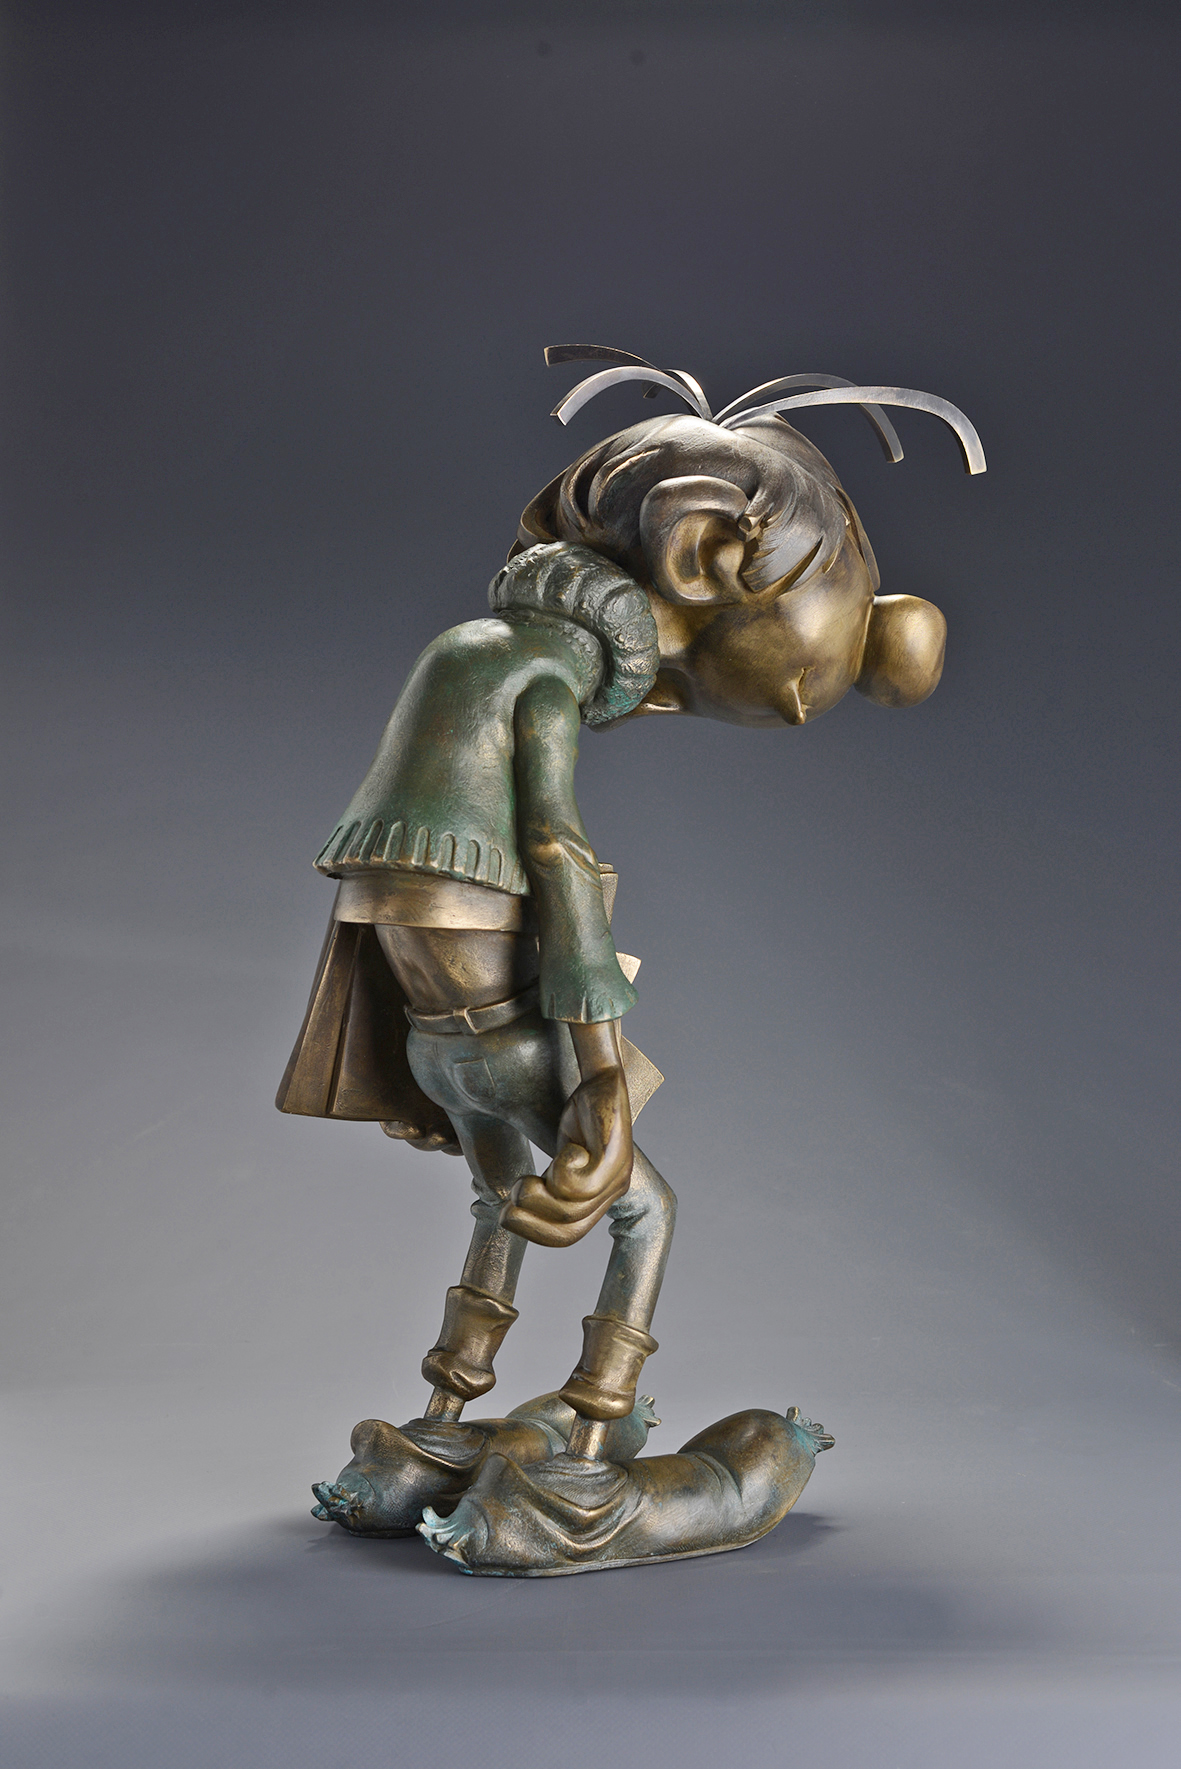 Gaston Lagaffe - Bronze composite